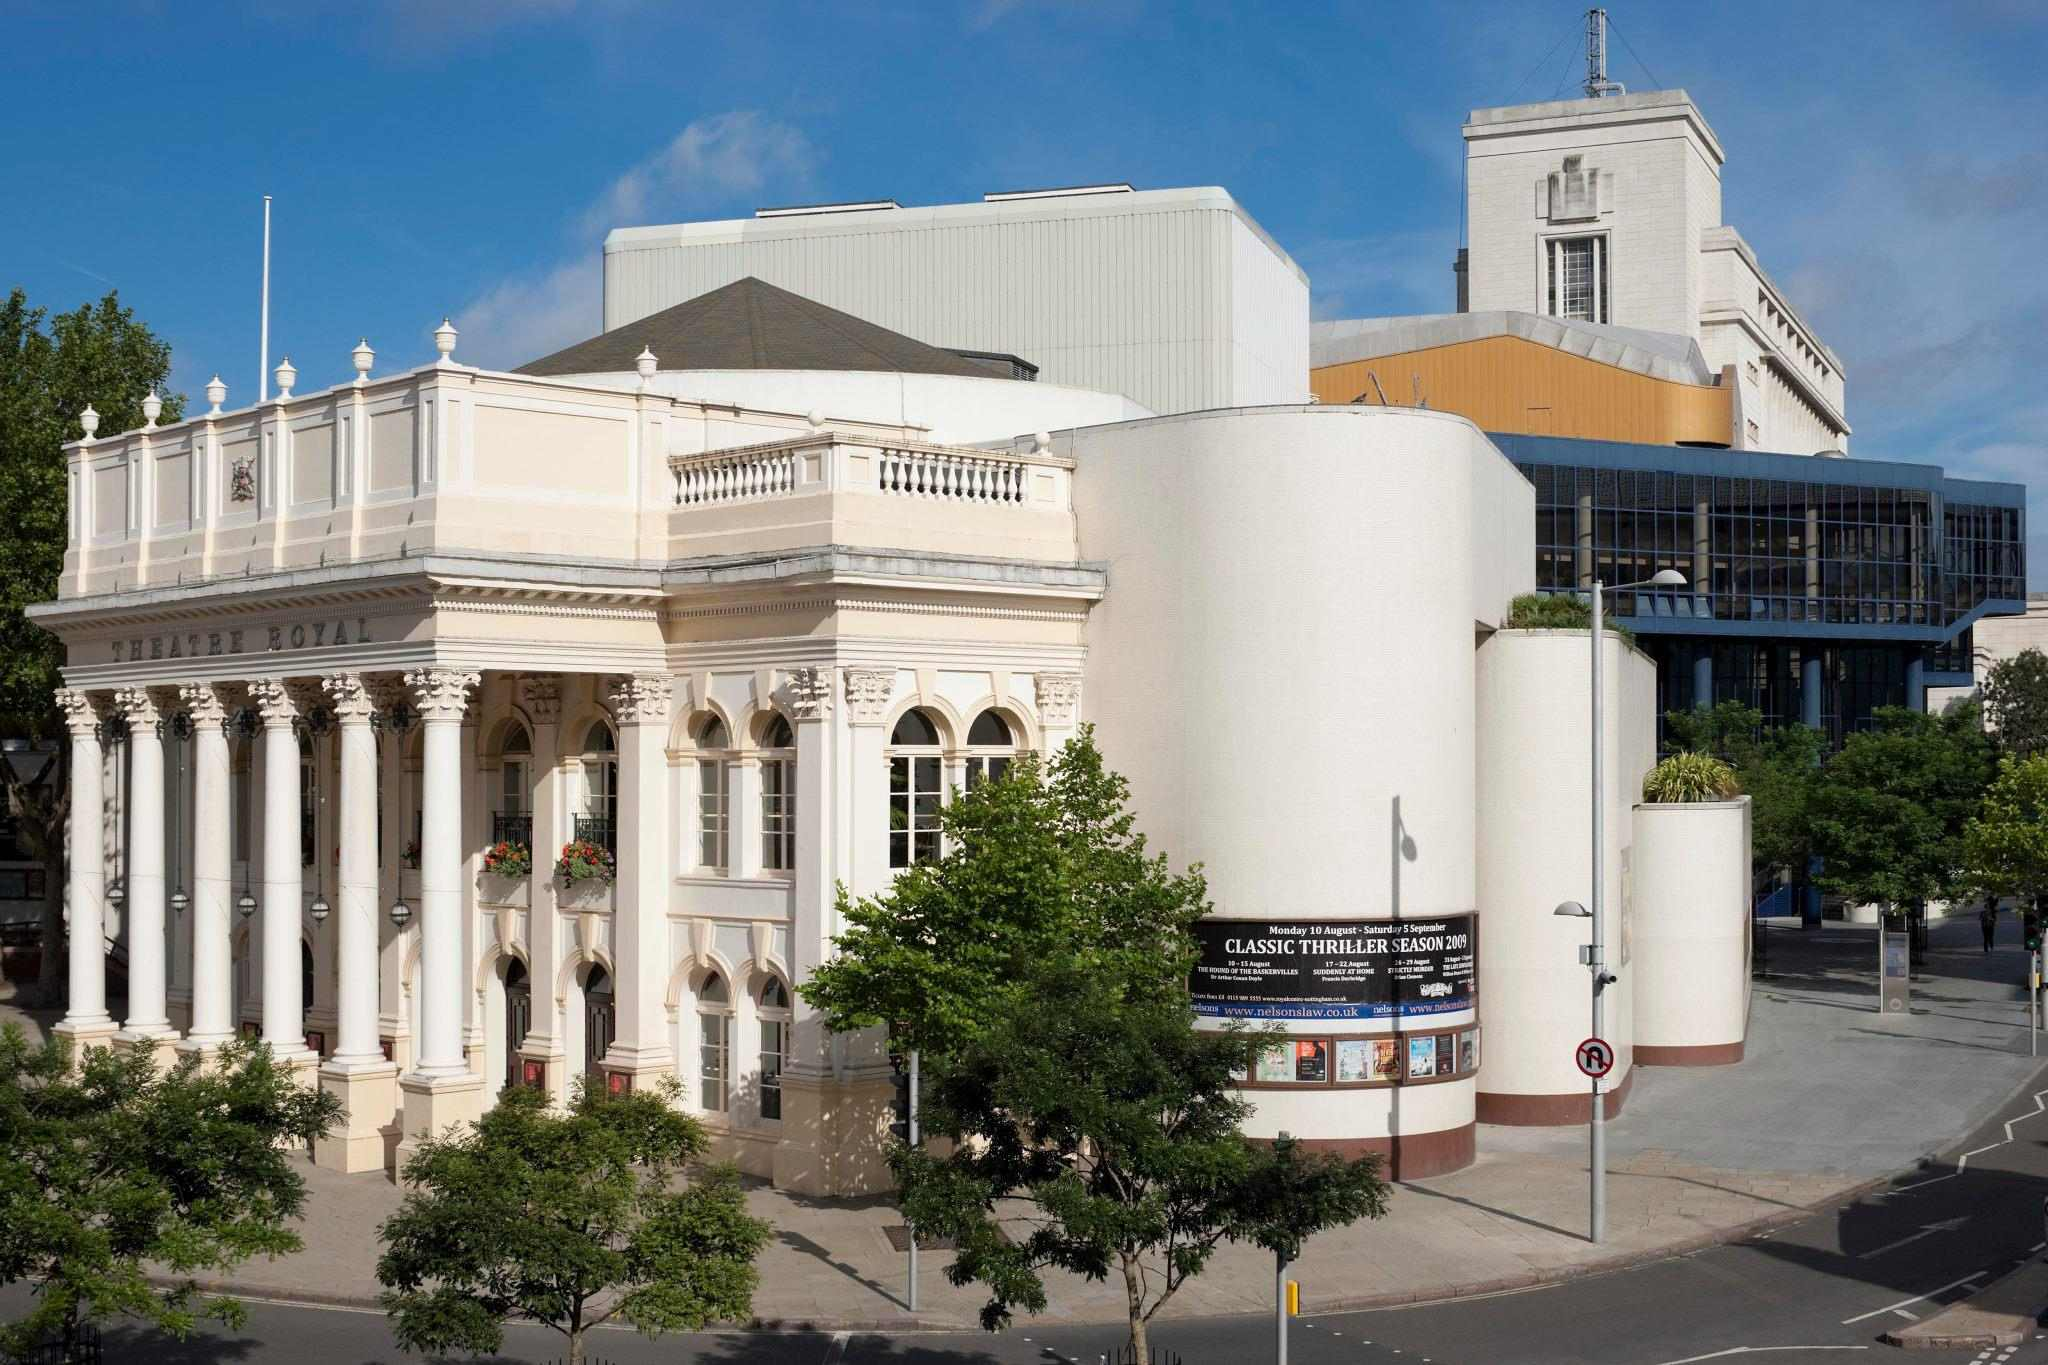 extravagent-historic-white-theatre-royal-and-royal-concert-hall